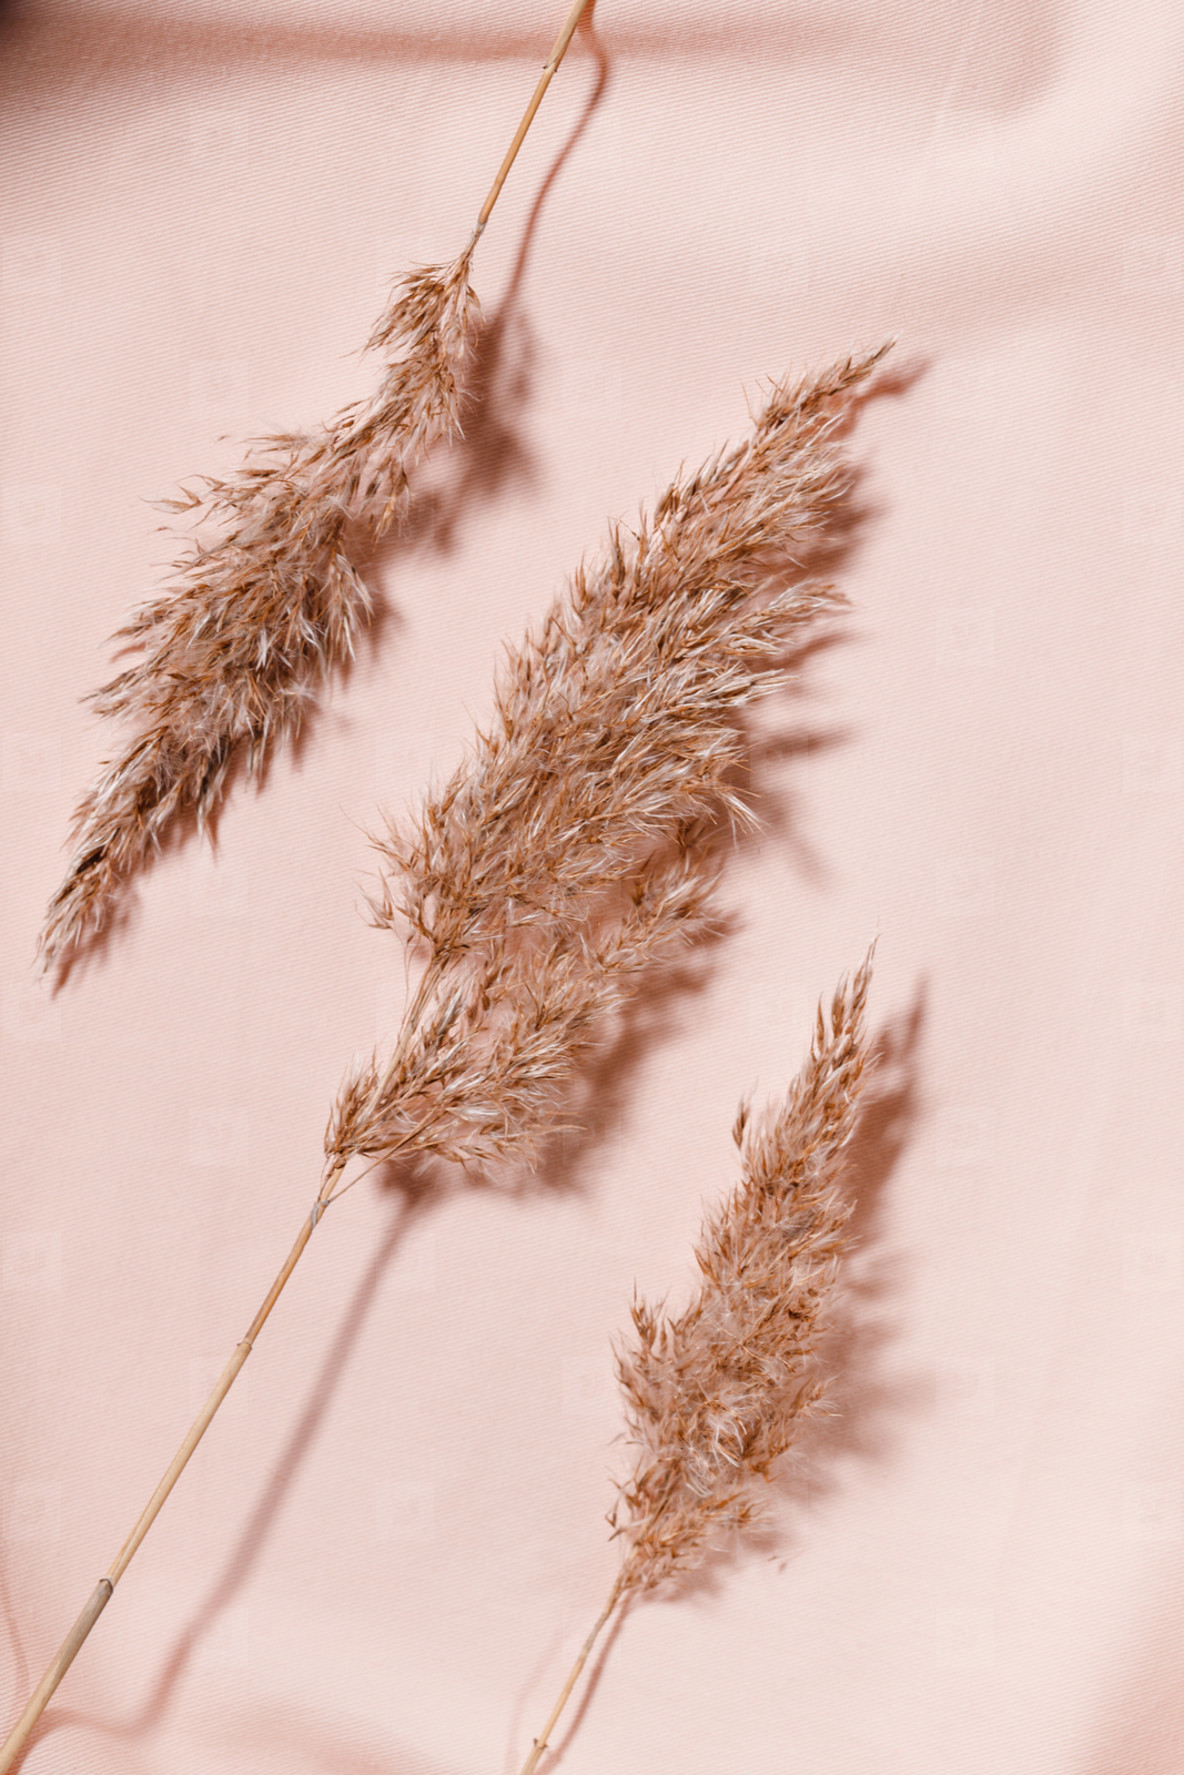 Abstract minimalist still life composition with dried reeds over pink cloth